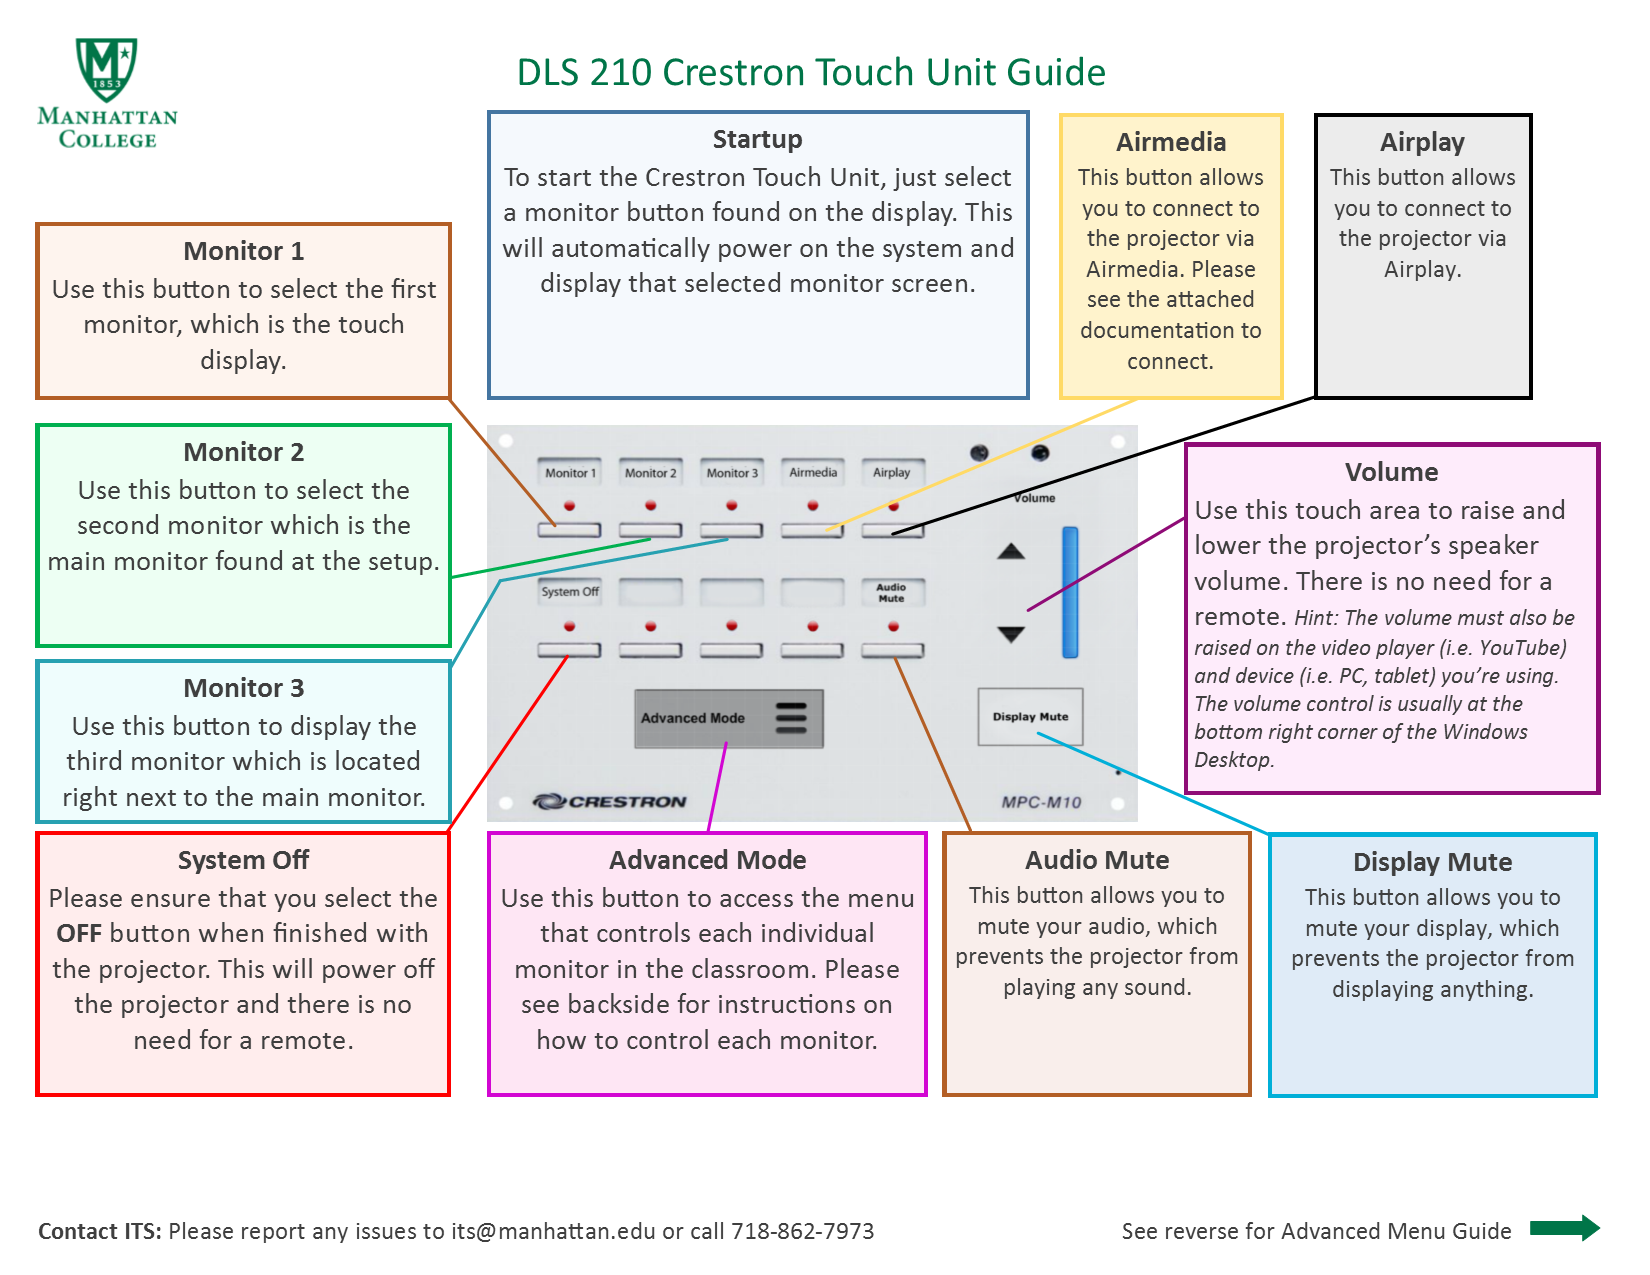 image depicts touch crestron guide